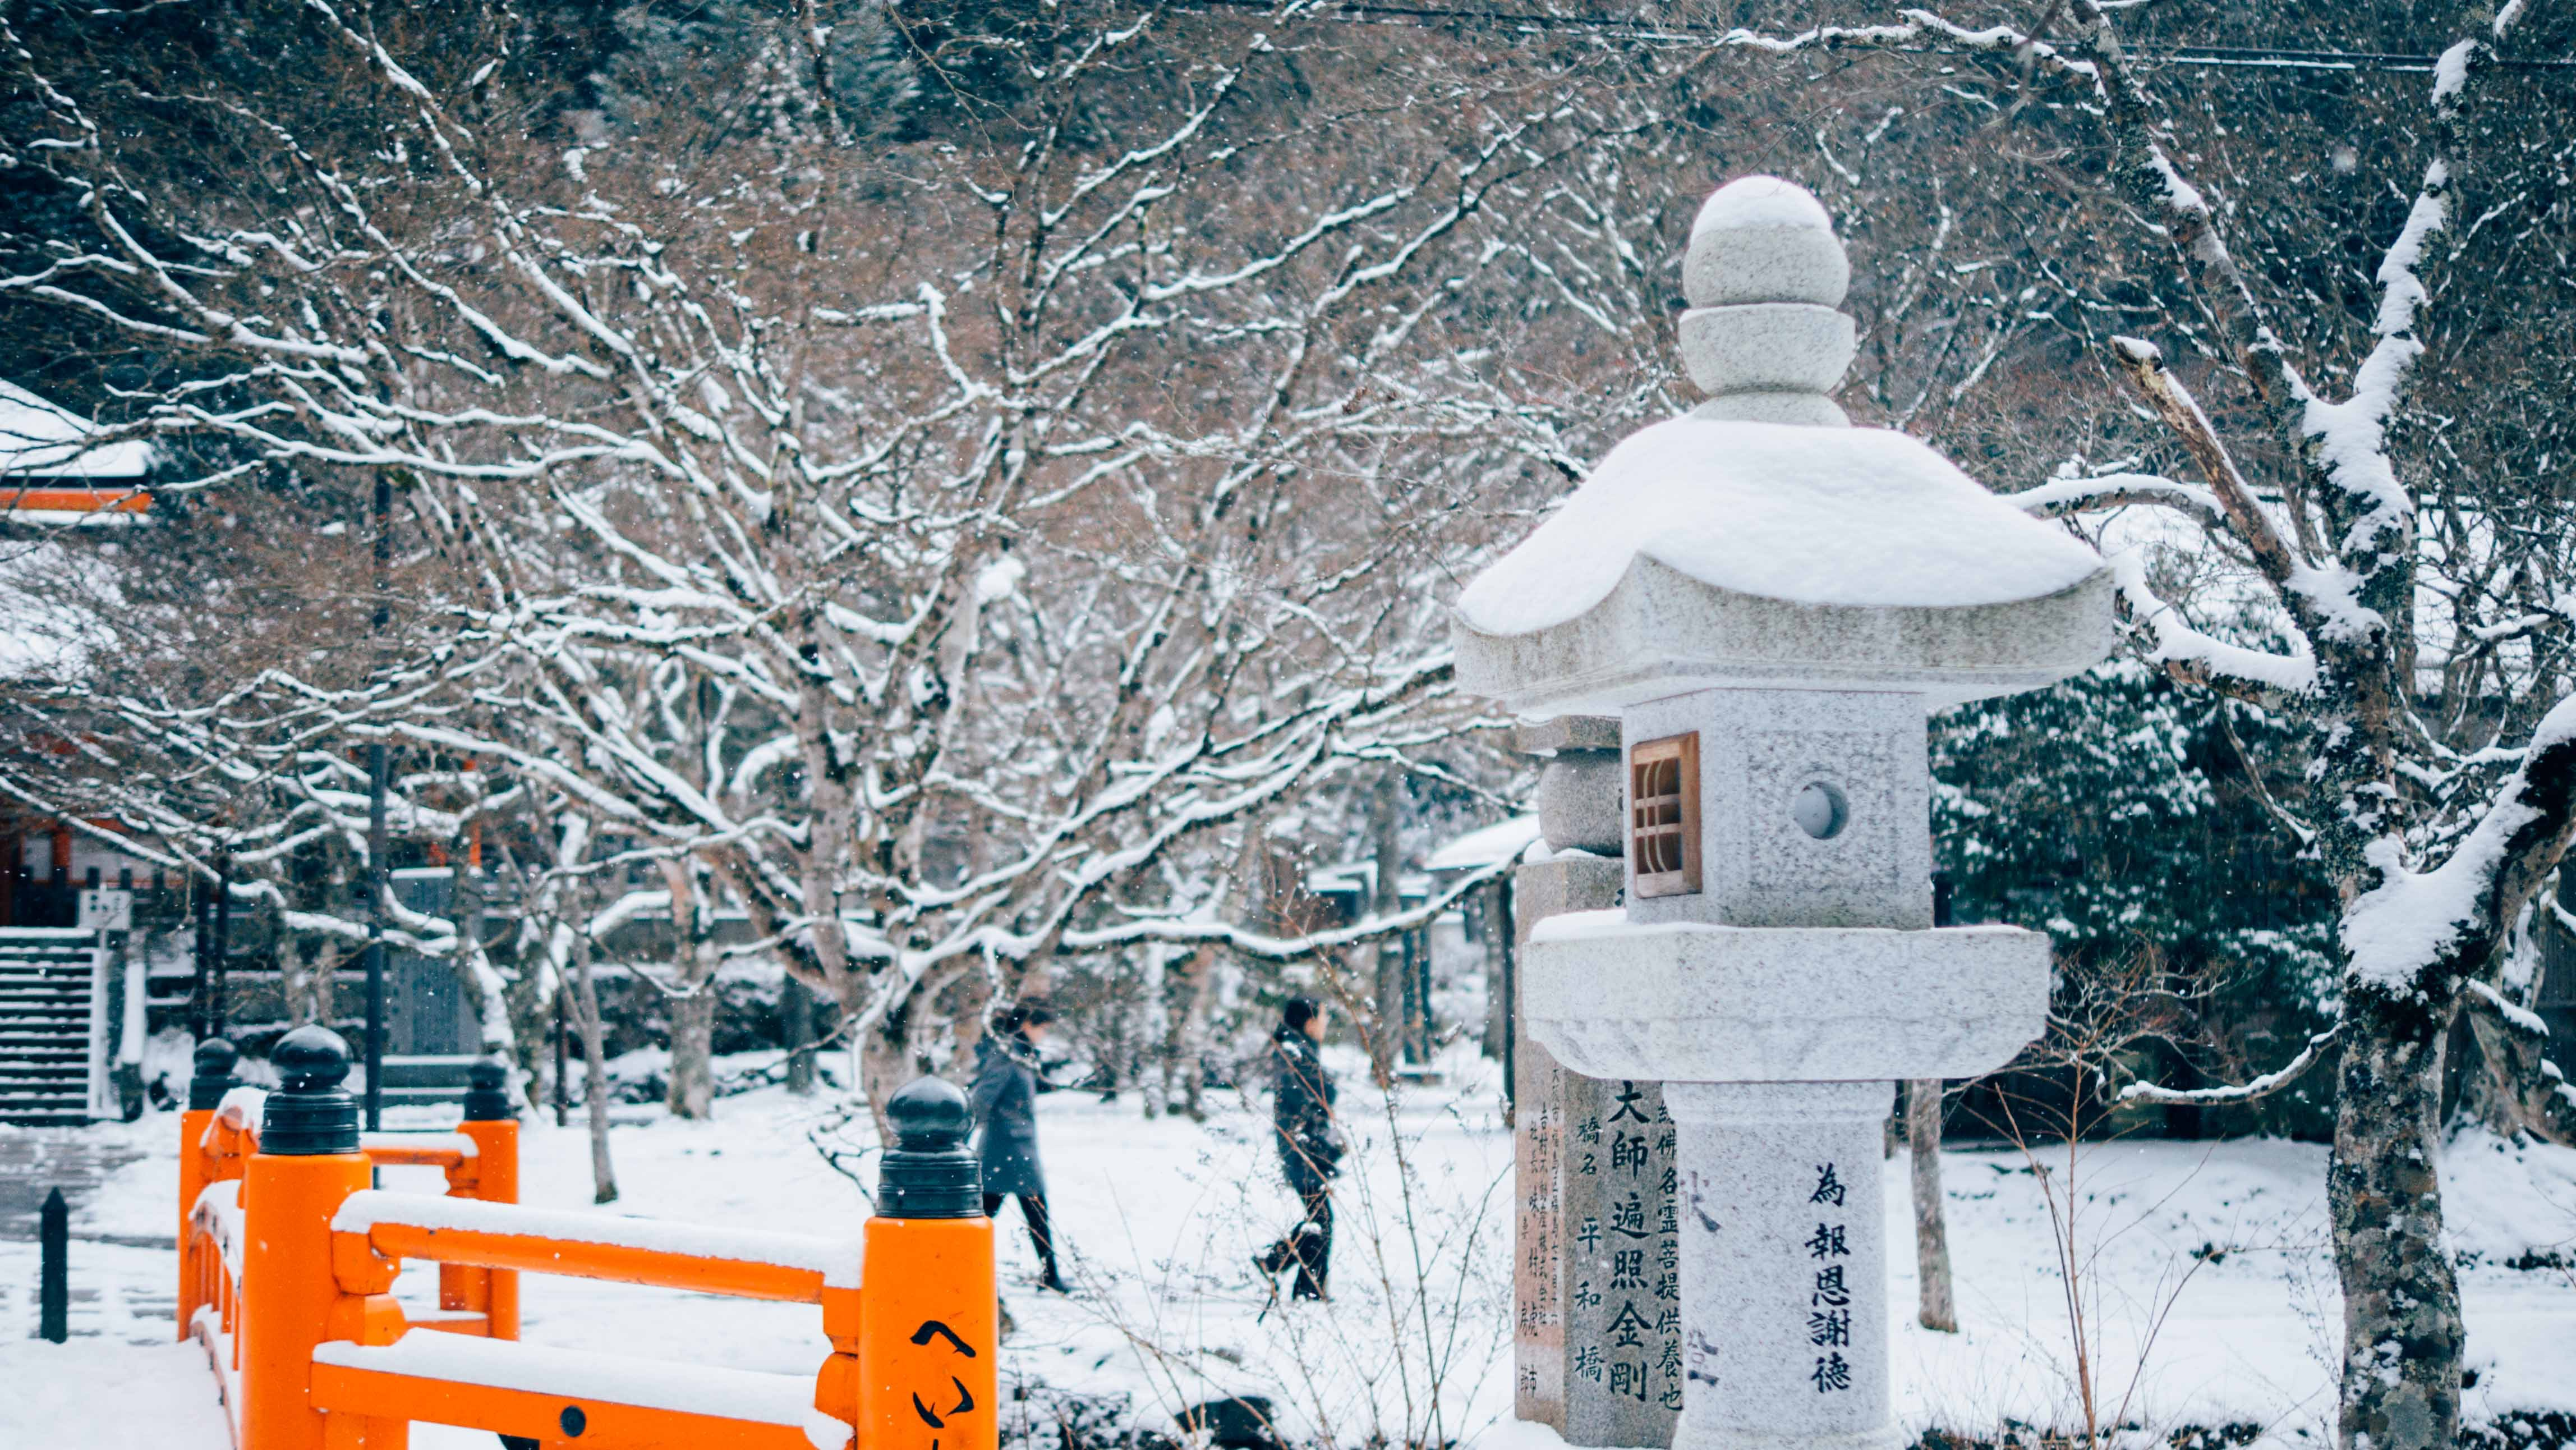 Two people walk in snow-covered landscape at Koyasan